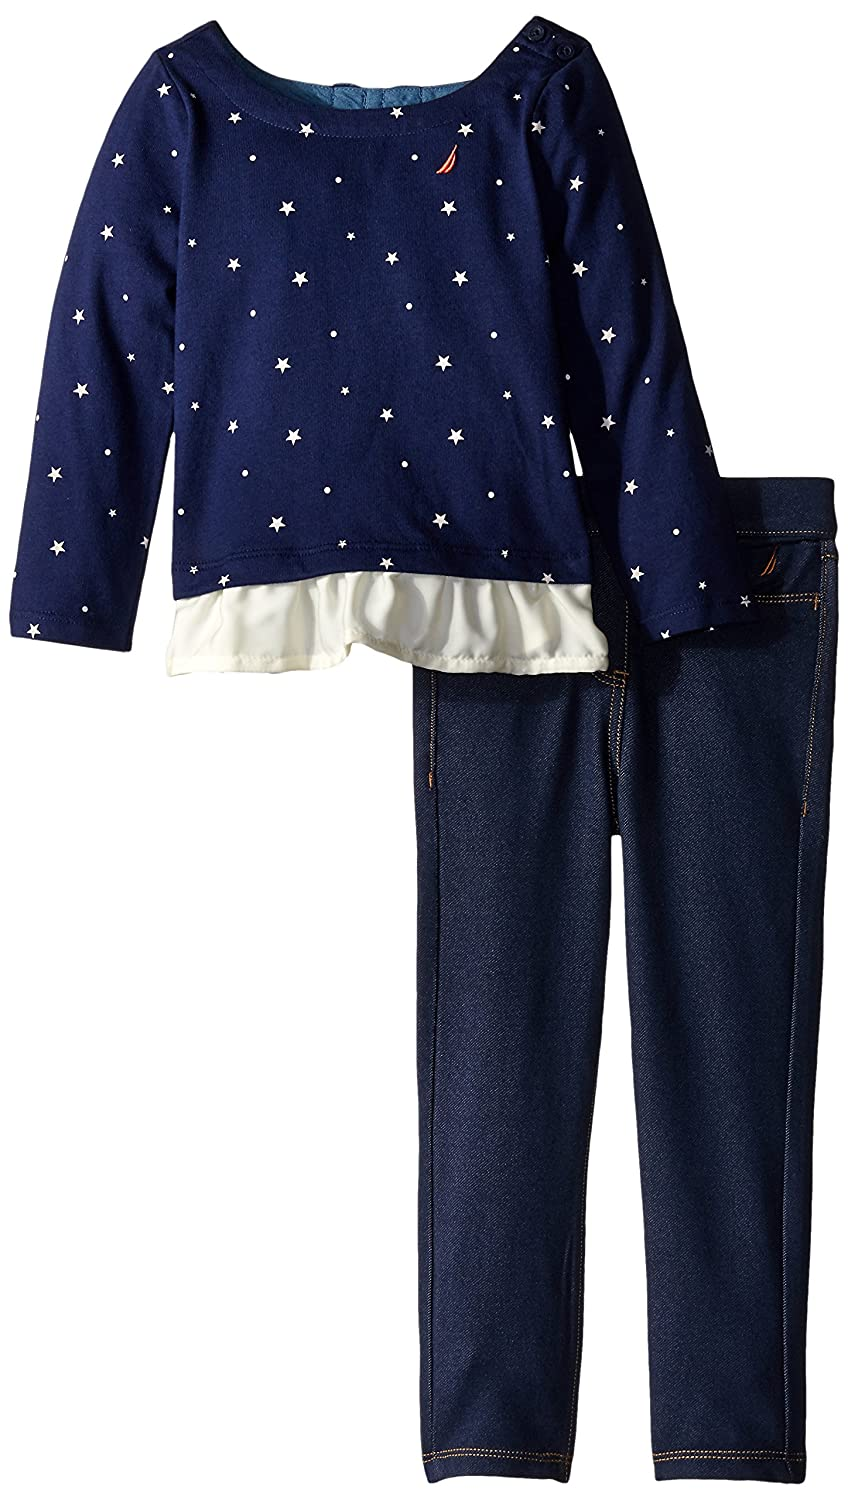 Nautica Girls 2 Piece Set Top with Contrast Peplum with Knit Jegging